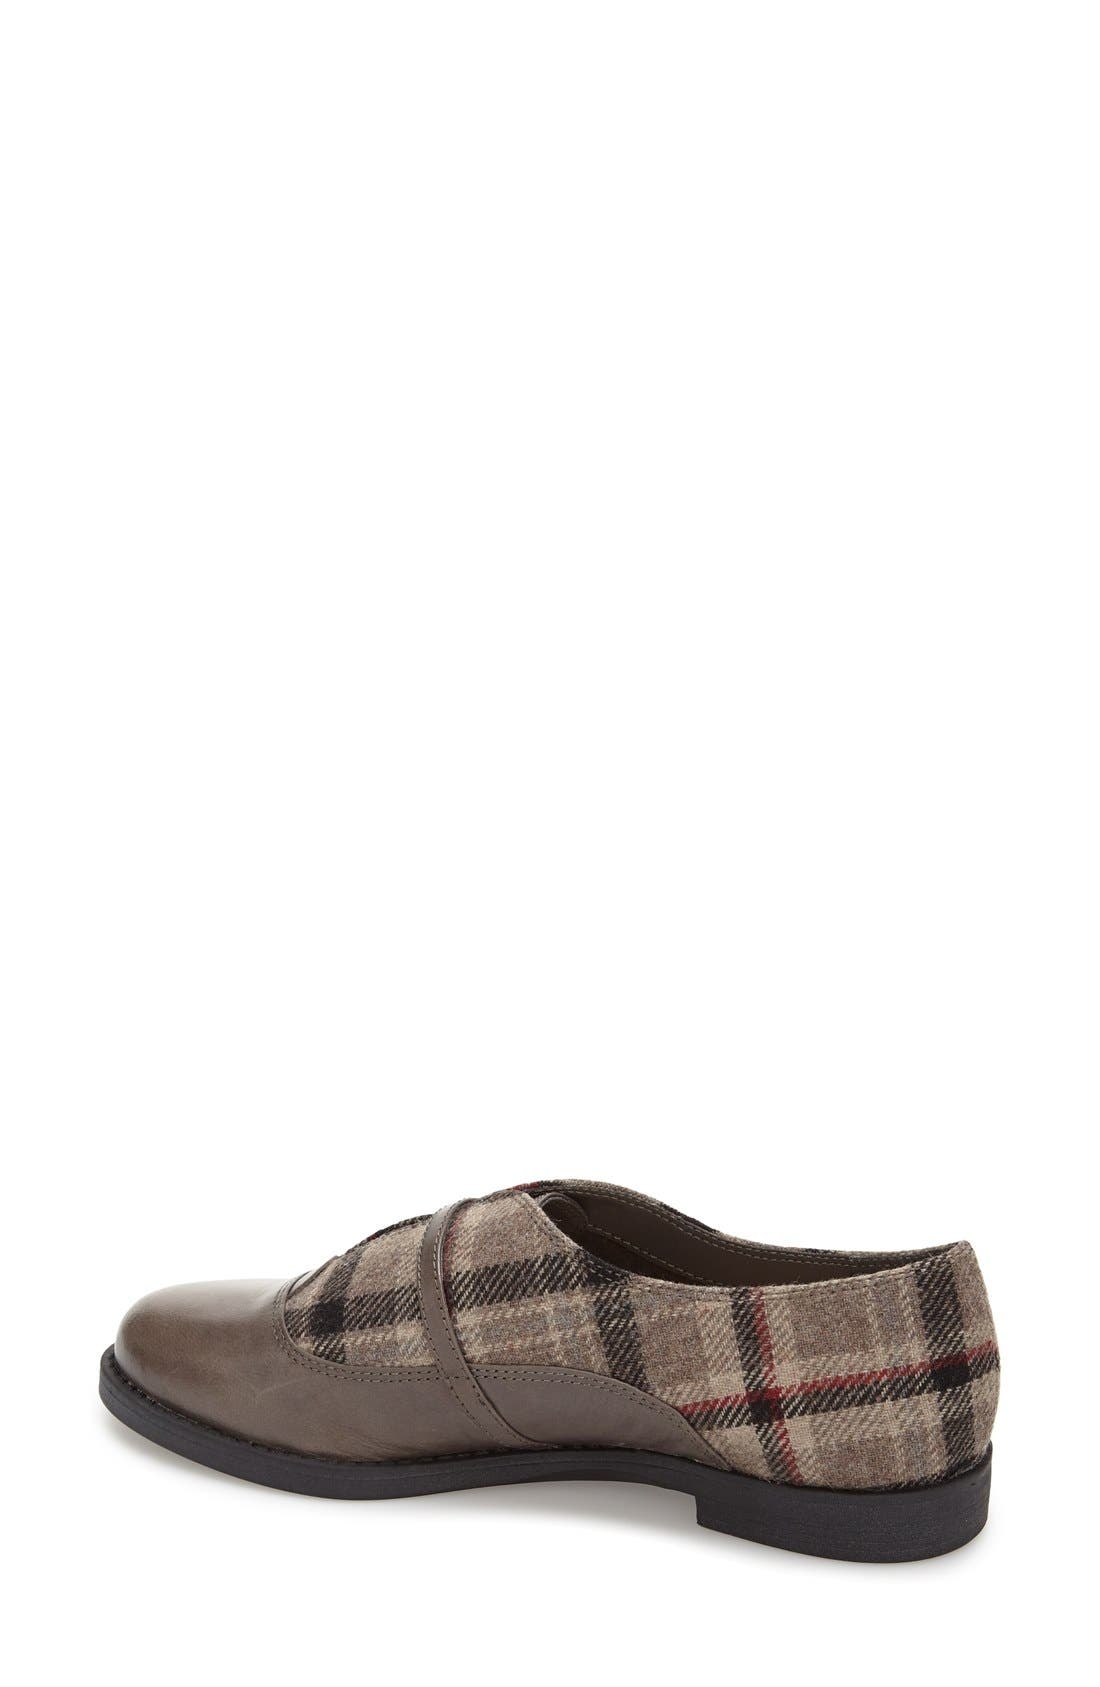 Alternate Image 2  - Bella Vita 'Reese' Slip On Oxford (Women)